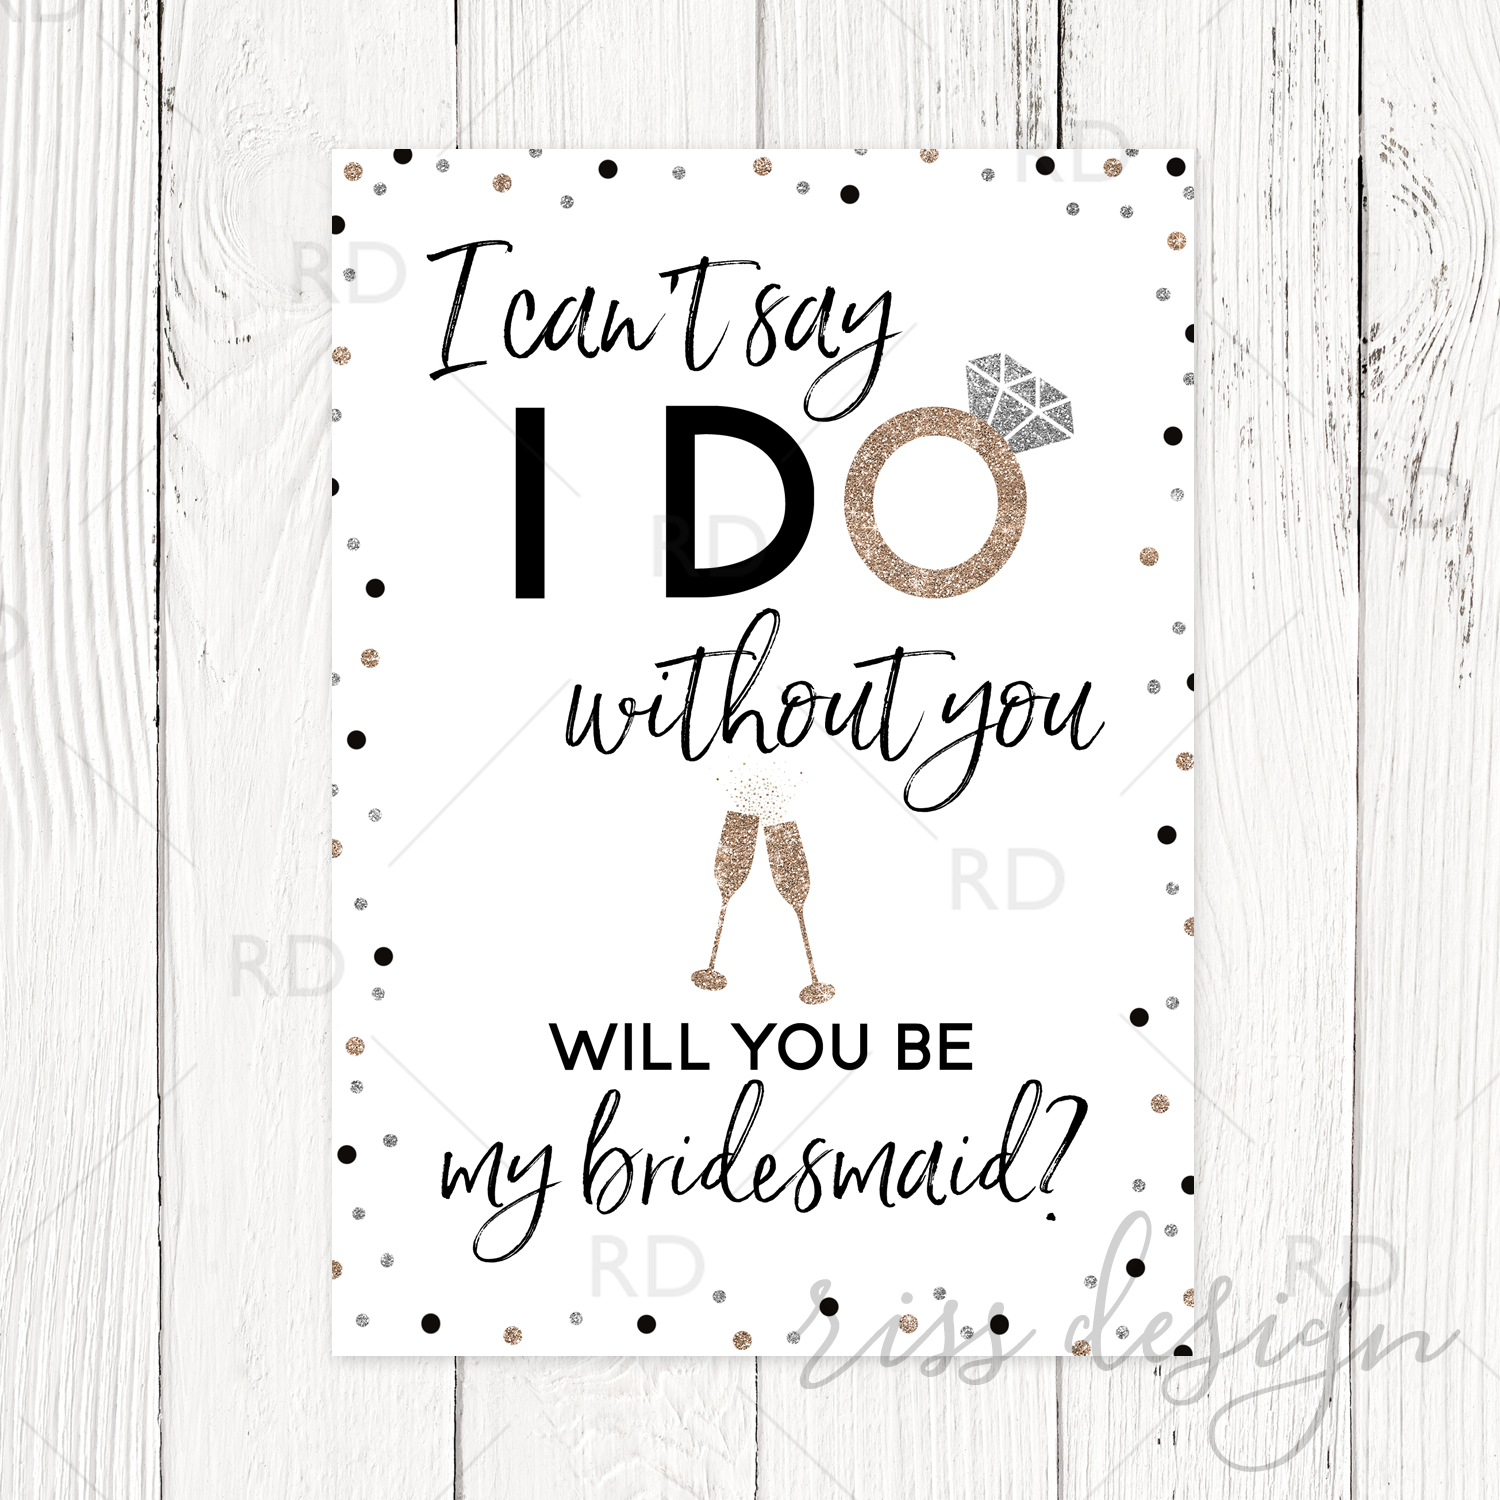 photo about Will You Be My Bridesmaid Printable referred to as I cant say I do devoid of your self will your self be my bridesmaid? Printable With Champagne Flutes